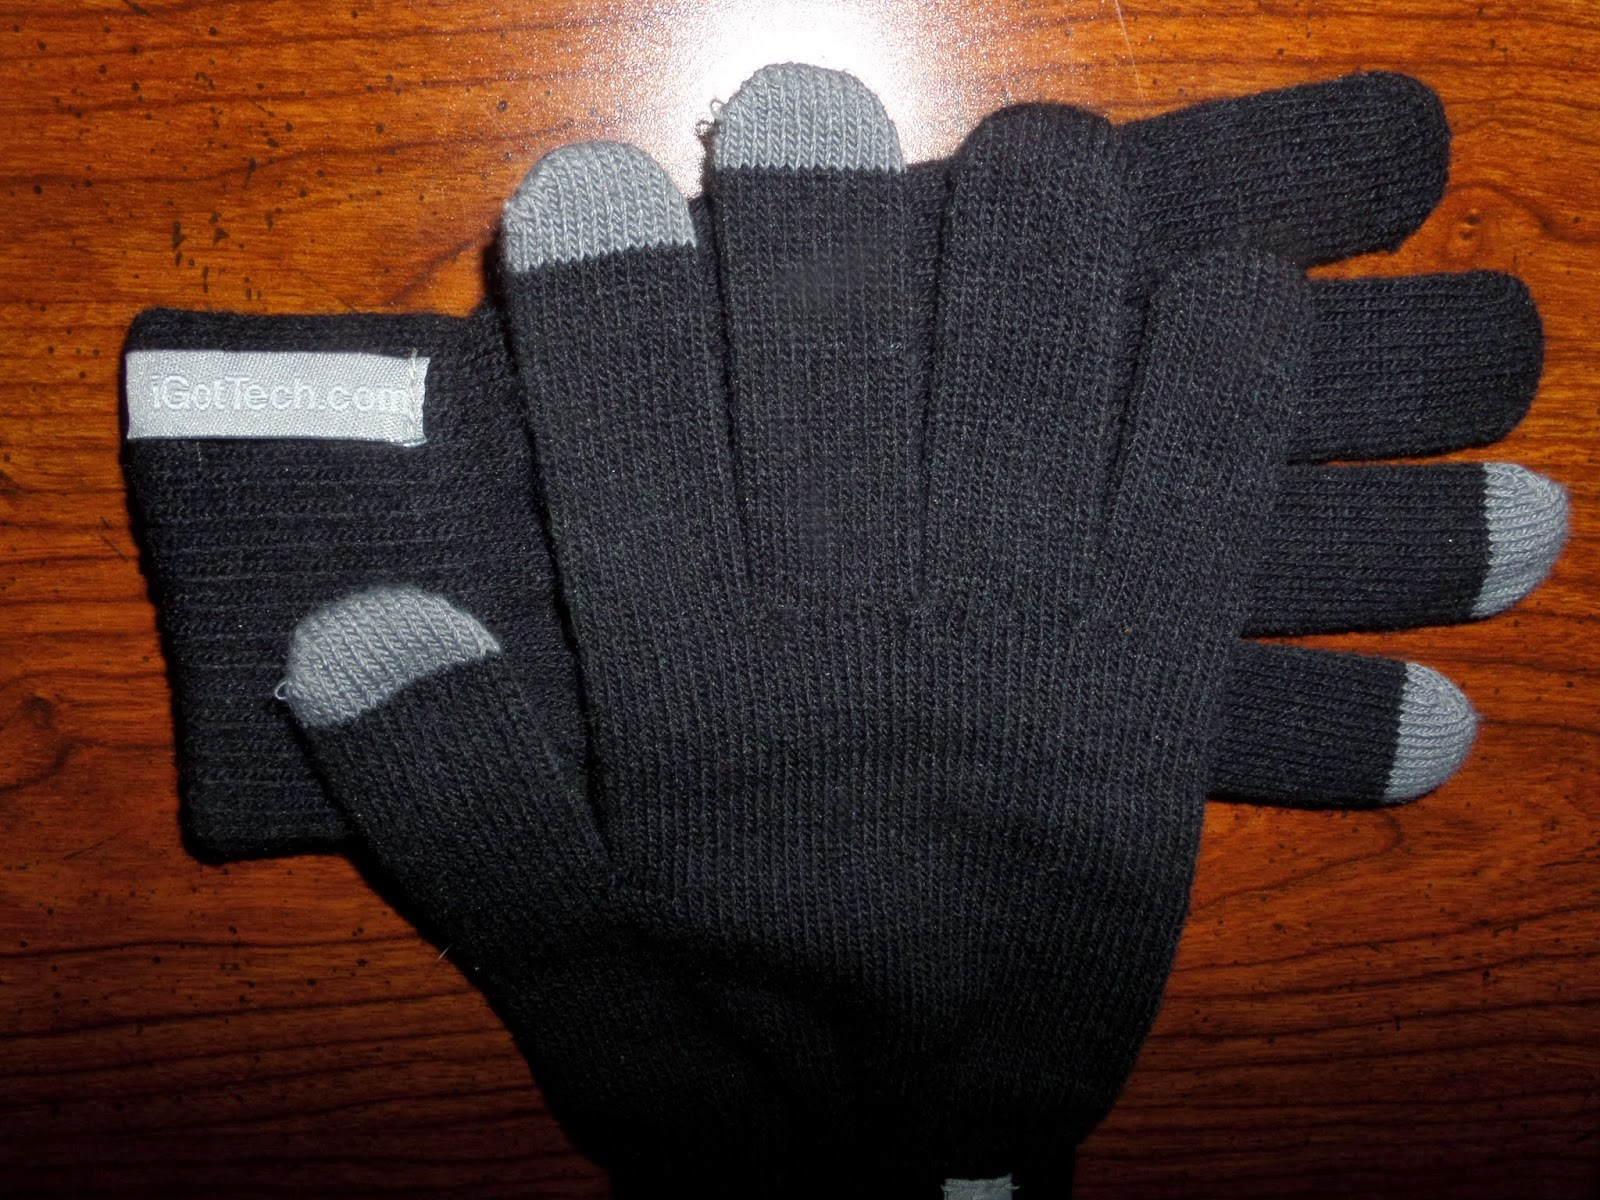 iGotTech Smart Tech Gloves